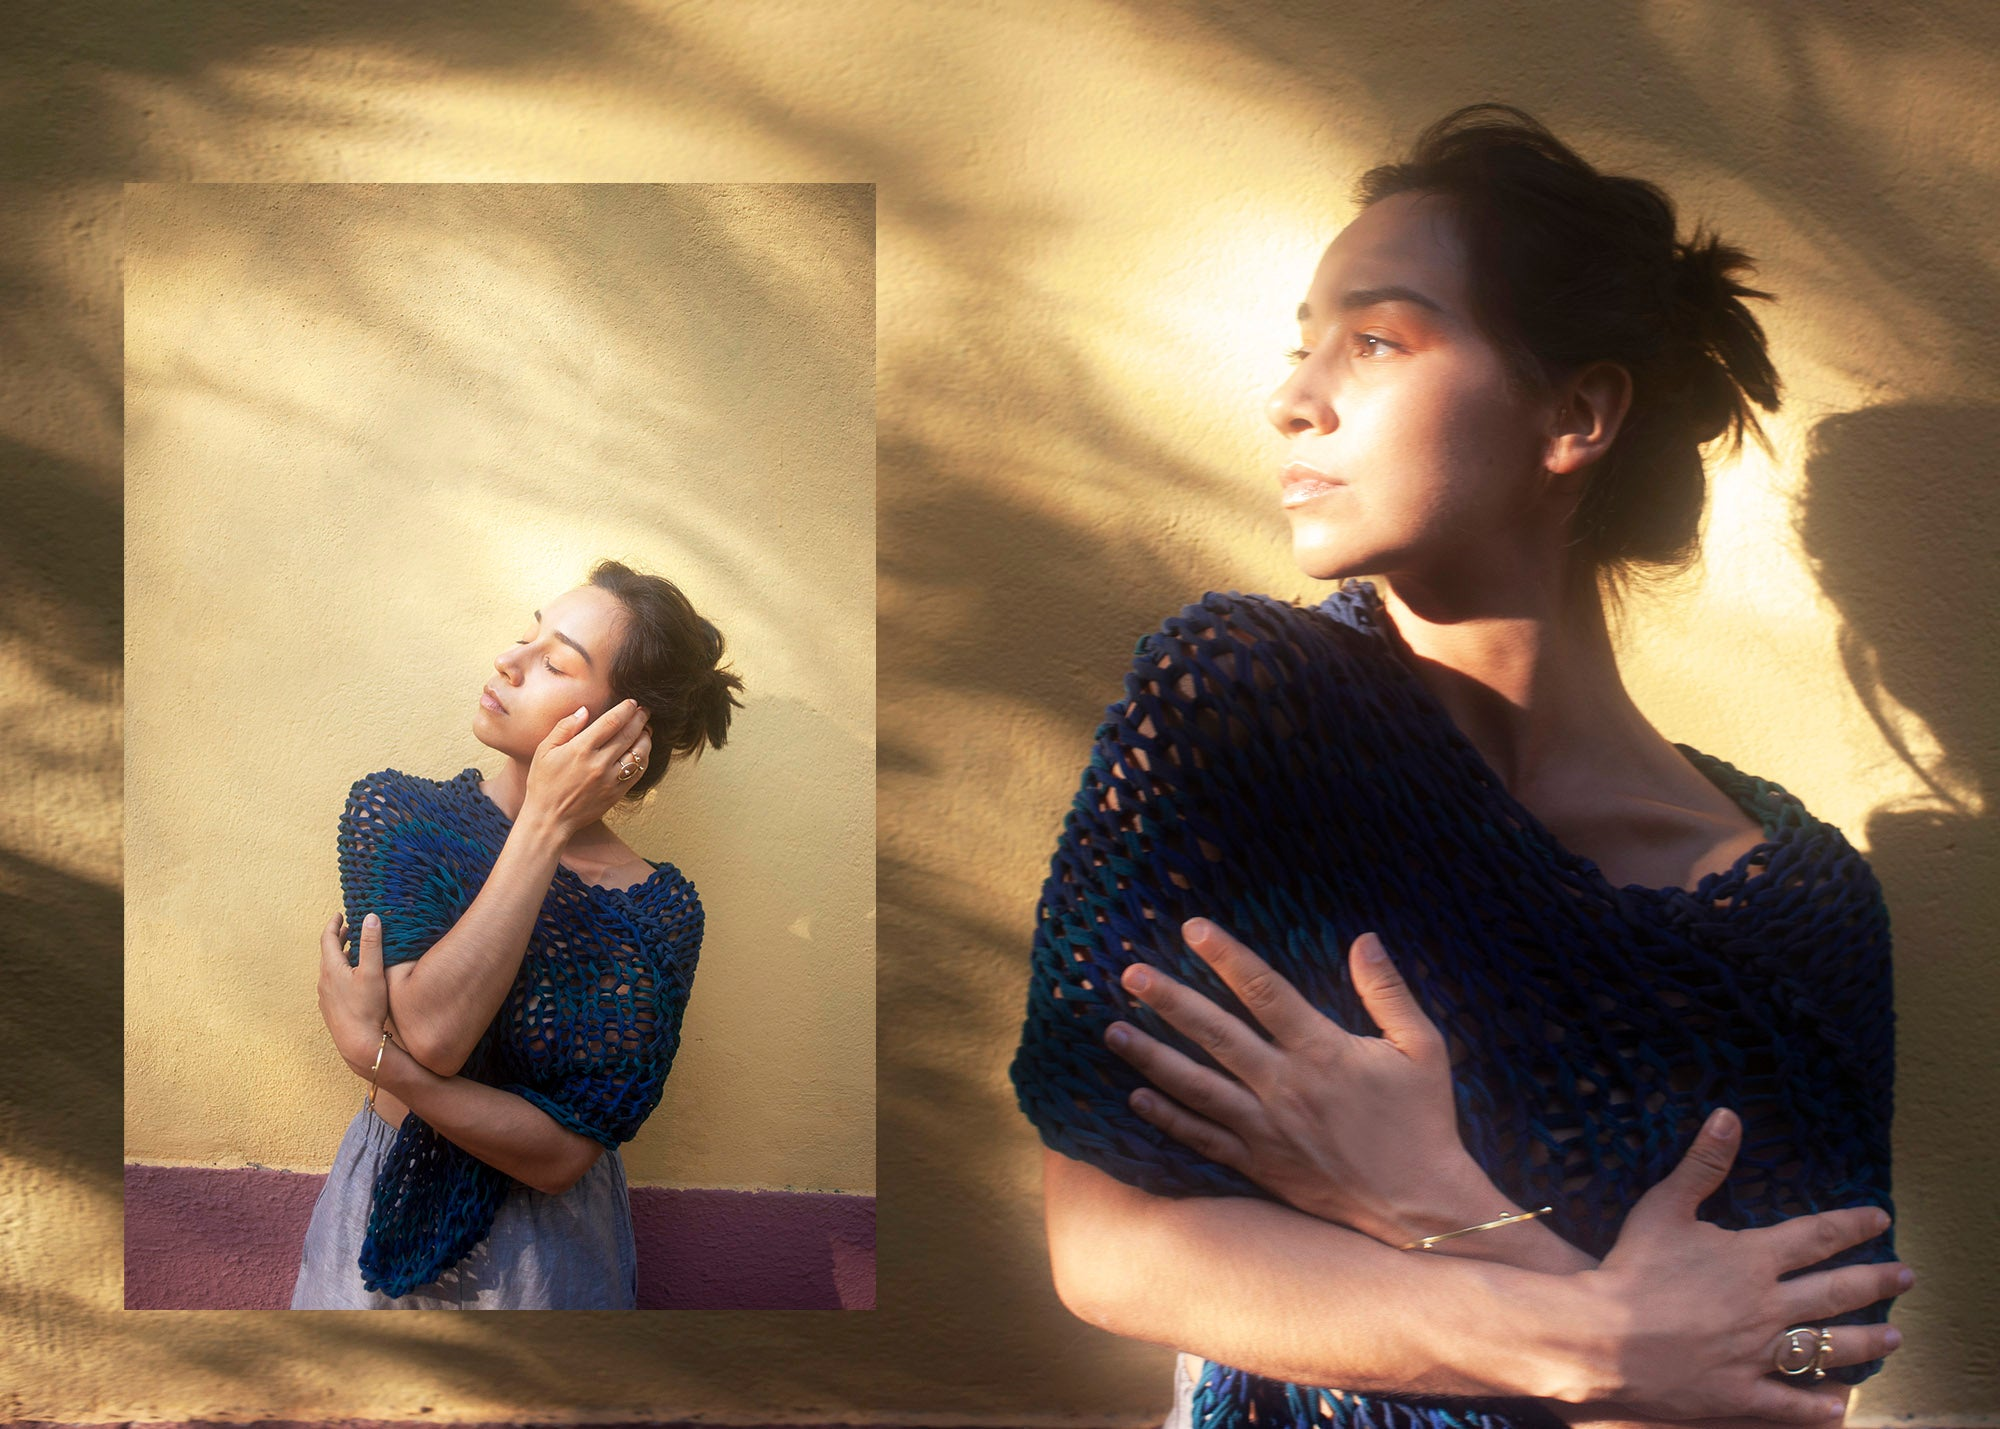 A woman in a diptych image wearing a handknit teal poncho in front of a yellow wall in the sunlight